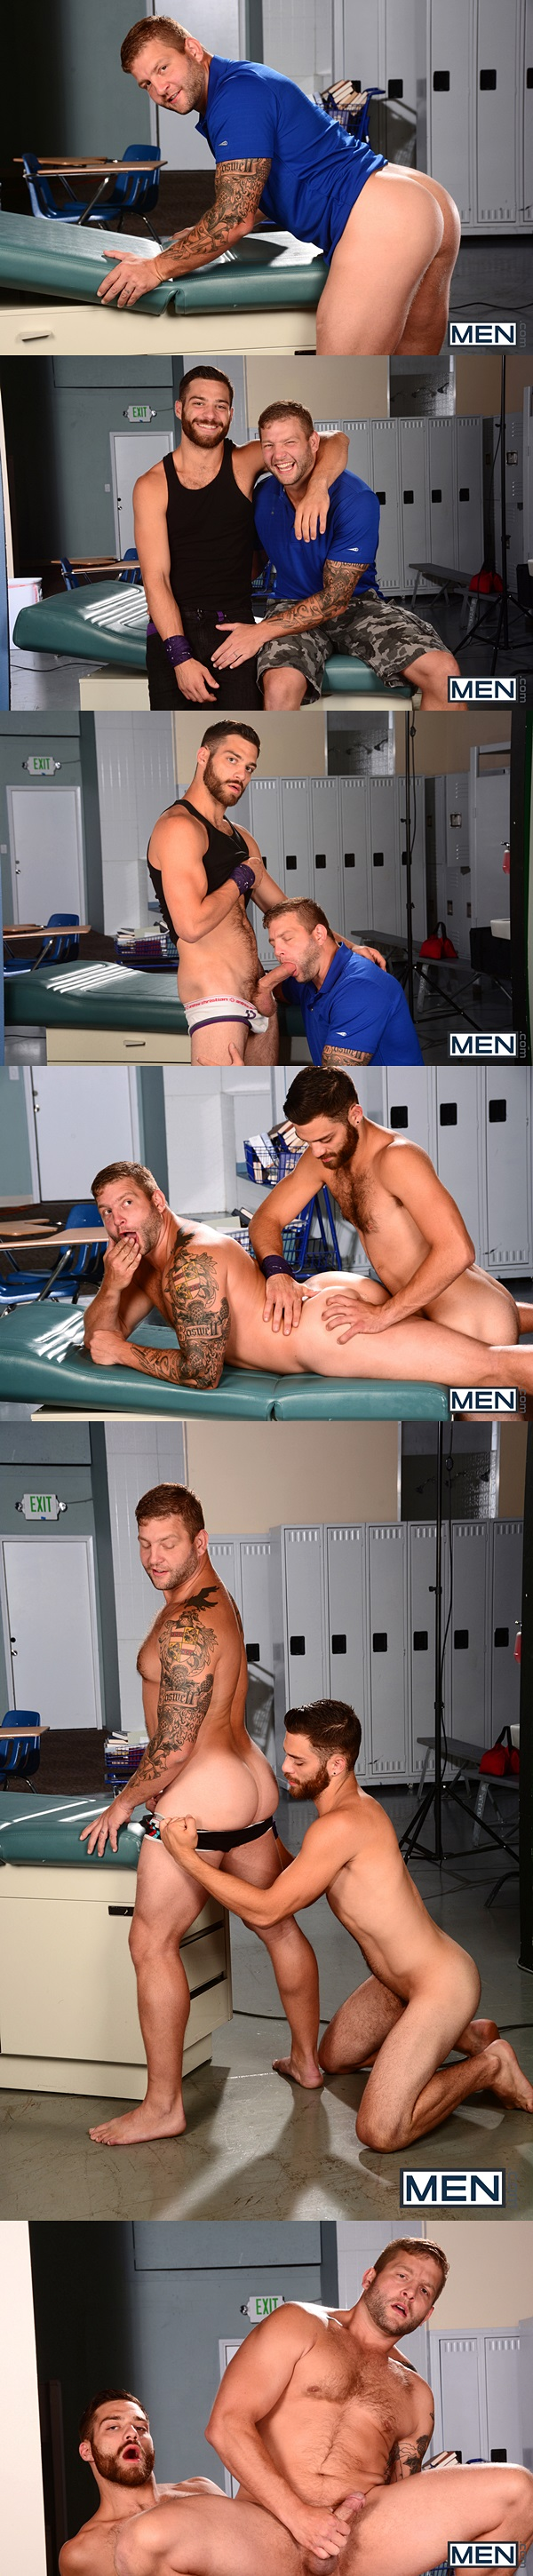 "9"" big-dicked Tommy Defendi fucks Colby Jansen's tight virgin ass at Men 01"